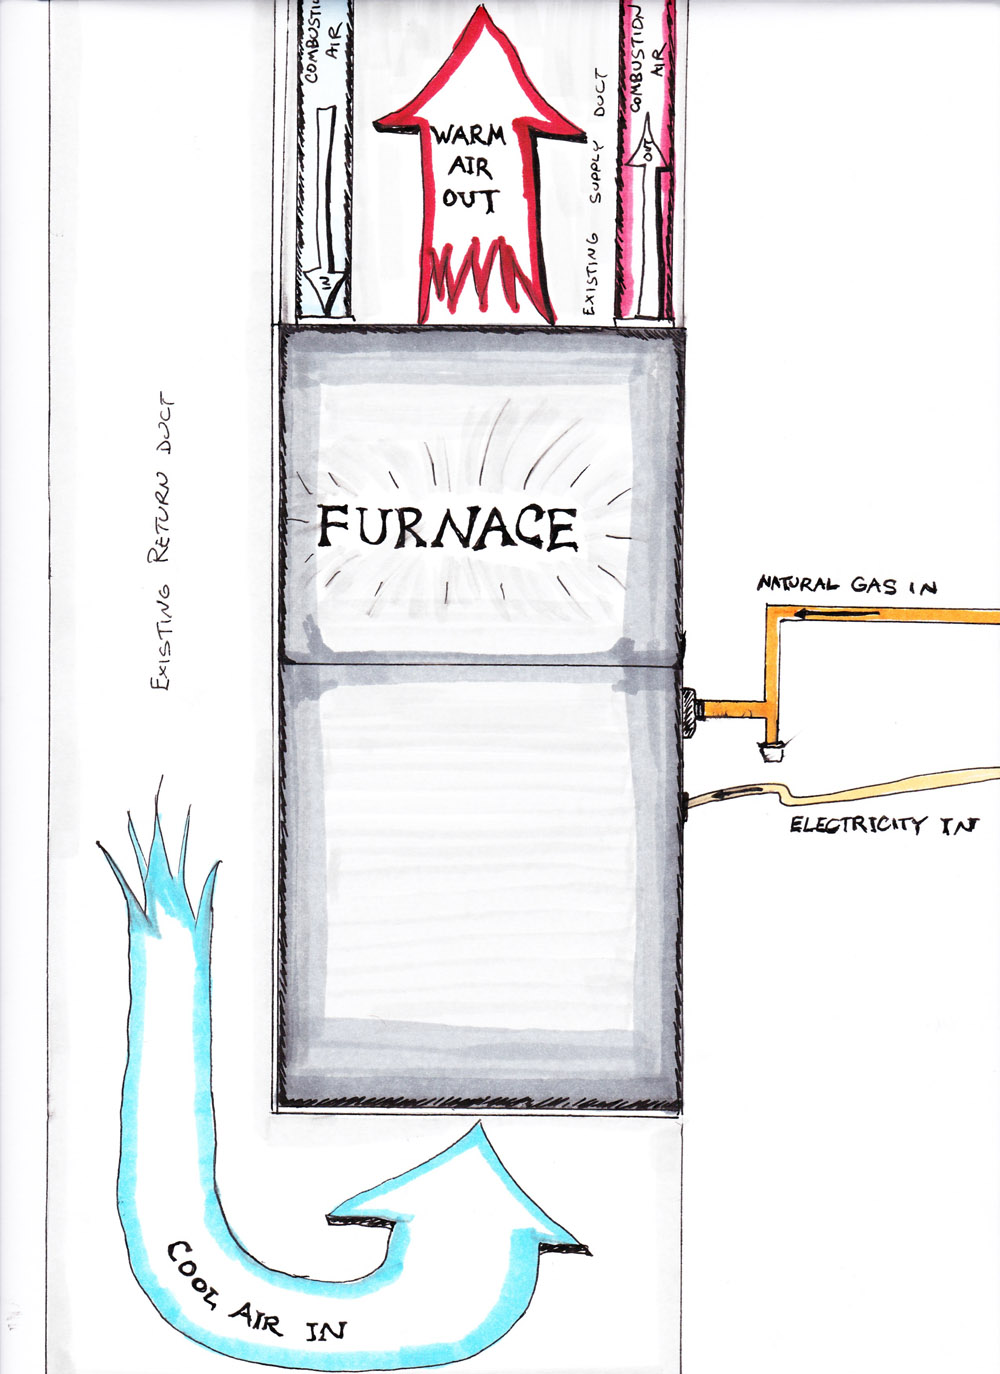 How to Replace Your Own Furnace | Mr. Money Mustache Old Wall Furnace Wiring Schematic on